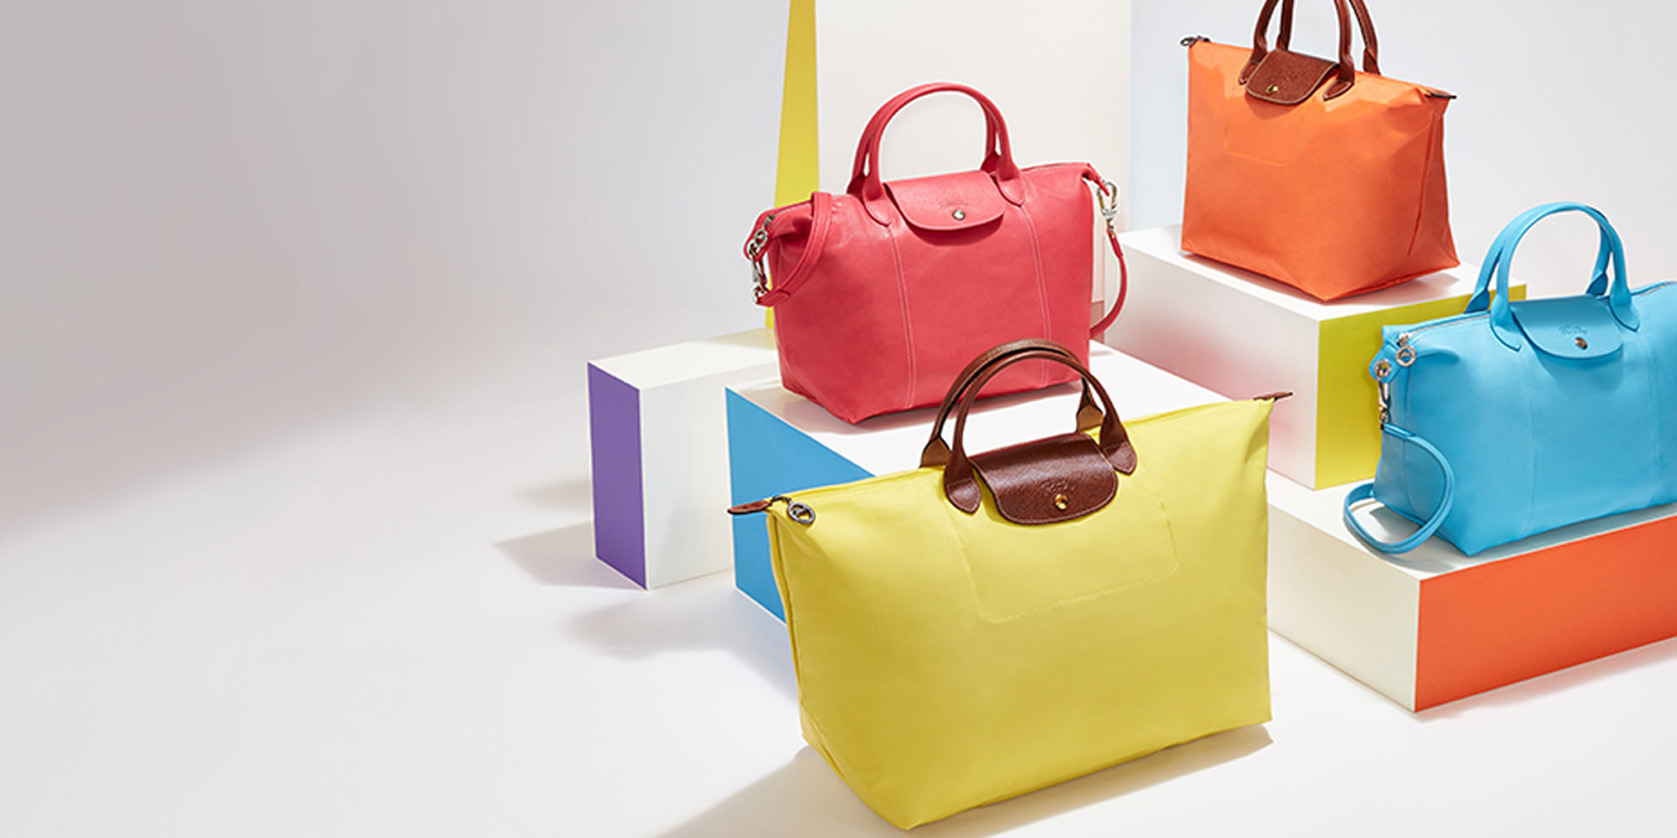 Today only, Nordstrom Rack discounts an array of Longchamp handbags, luggage & more from $55